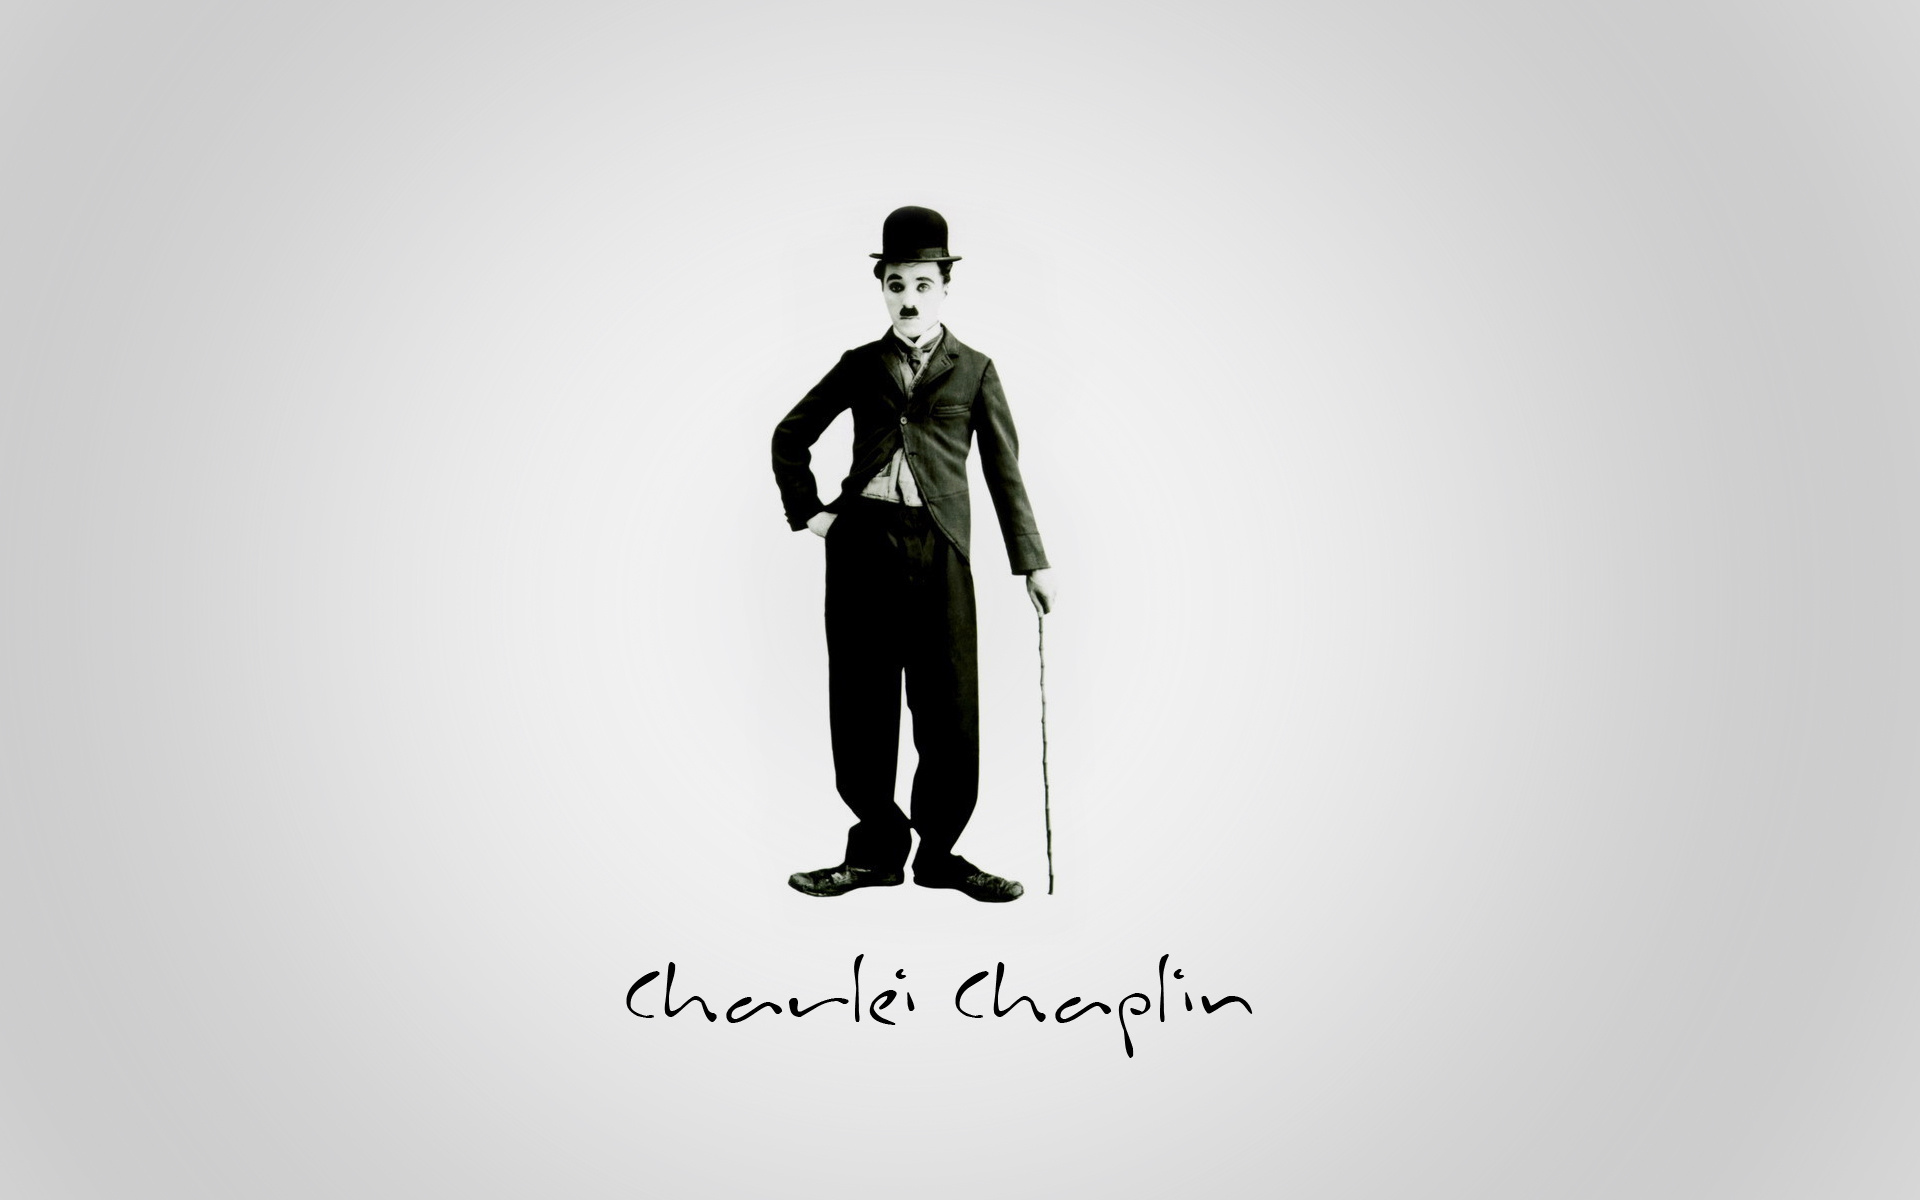 Charlie Chaplin Wallpaper actor great people 1 Celebrity and Movie 1920x1200